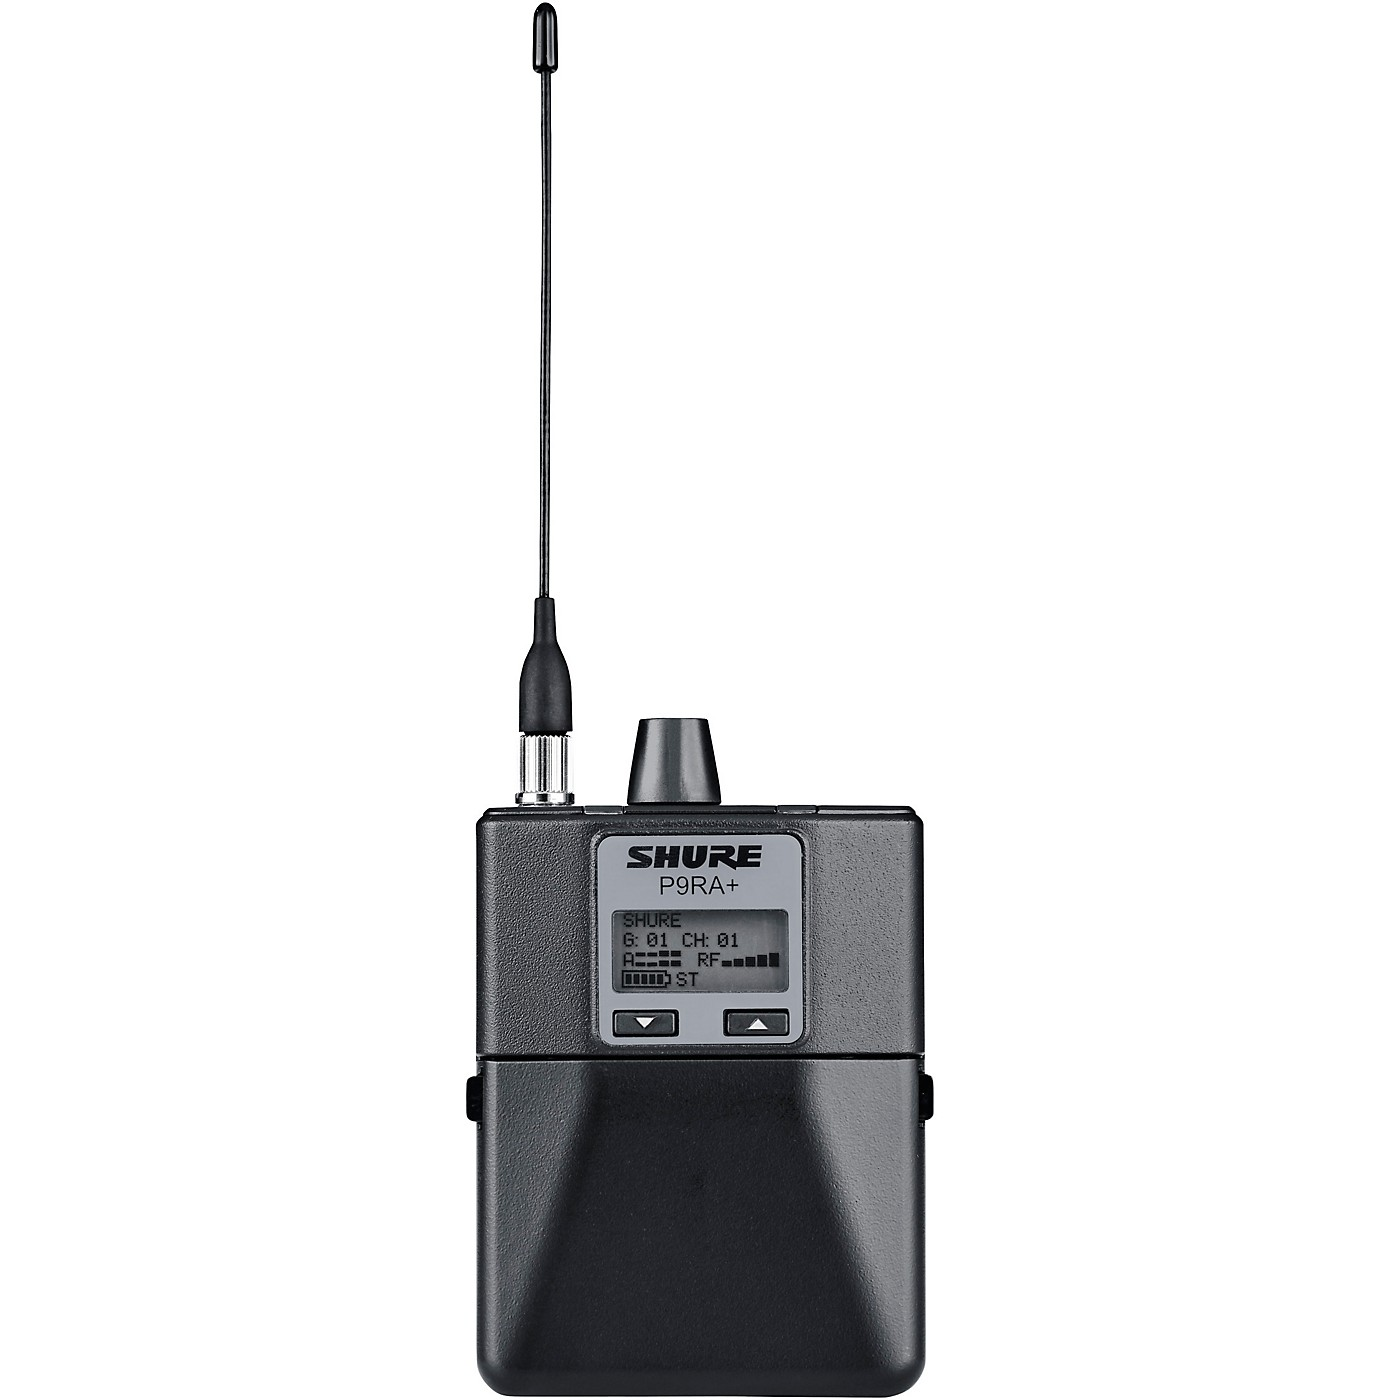 Shure P9RA+ Bodypack Receiver for Shure PSM 900 Personal Monitor System thumbnail